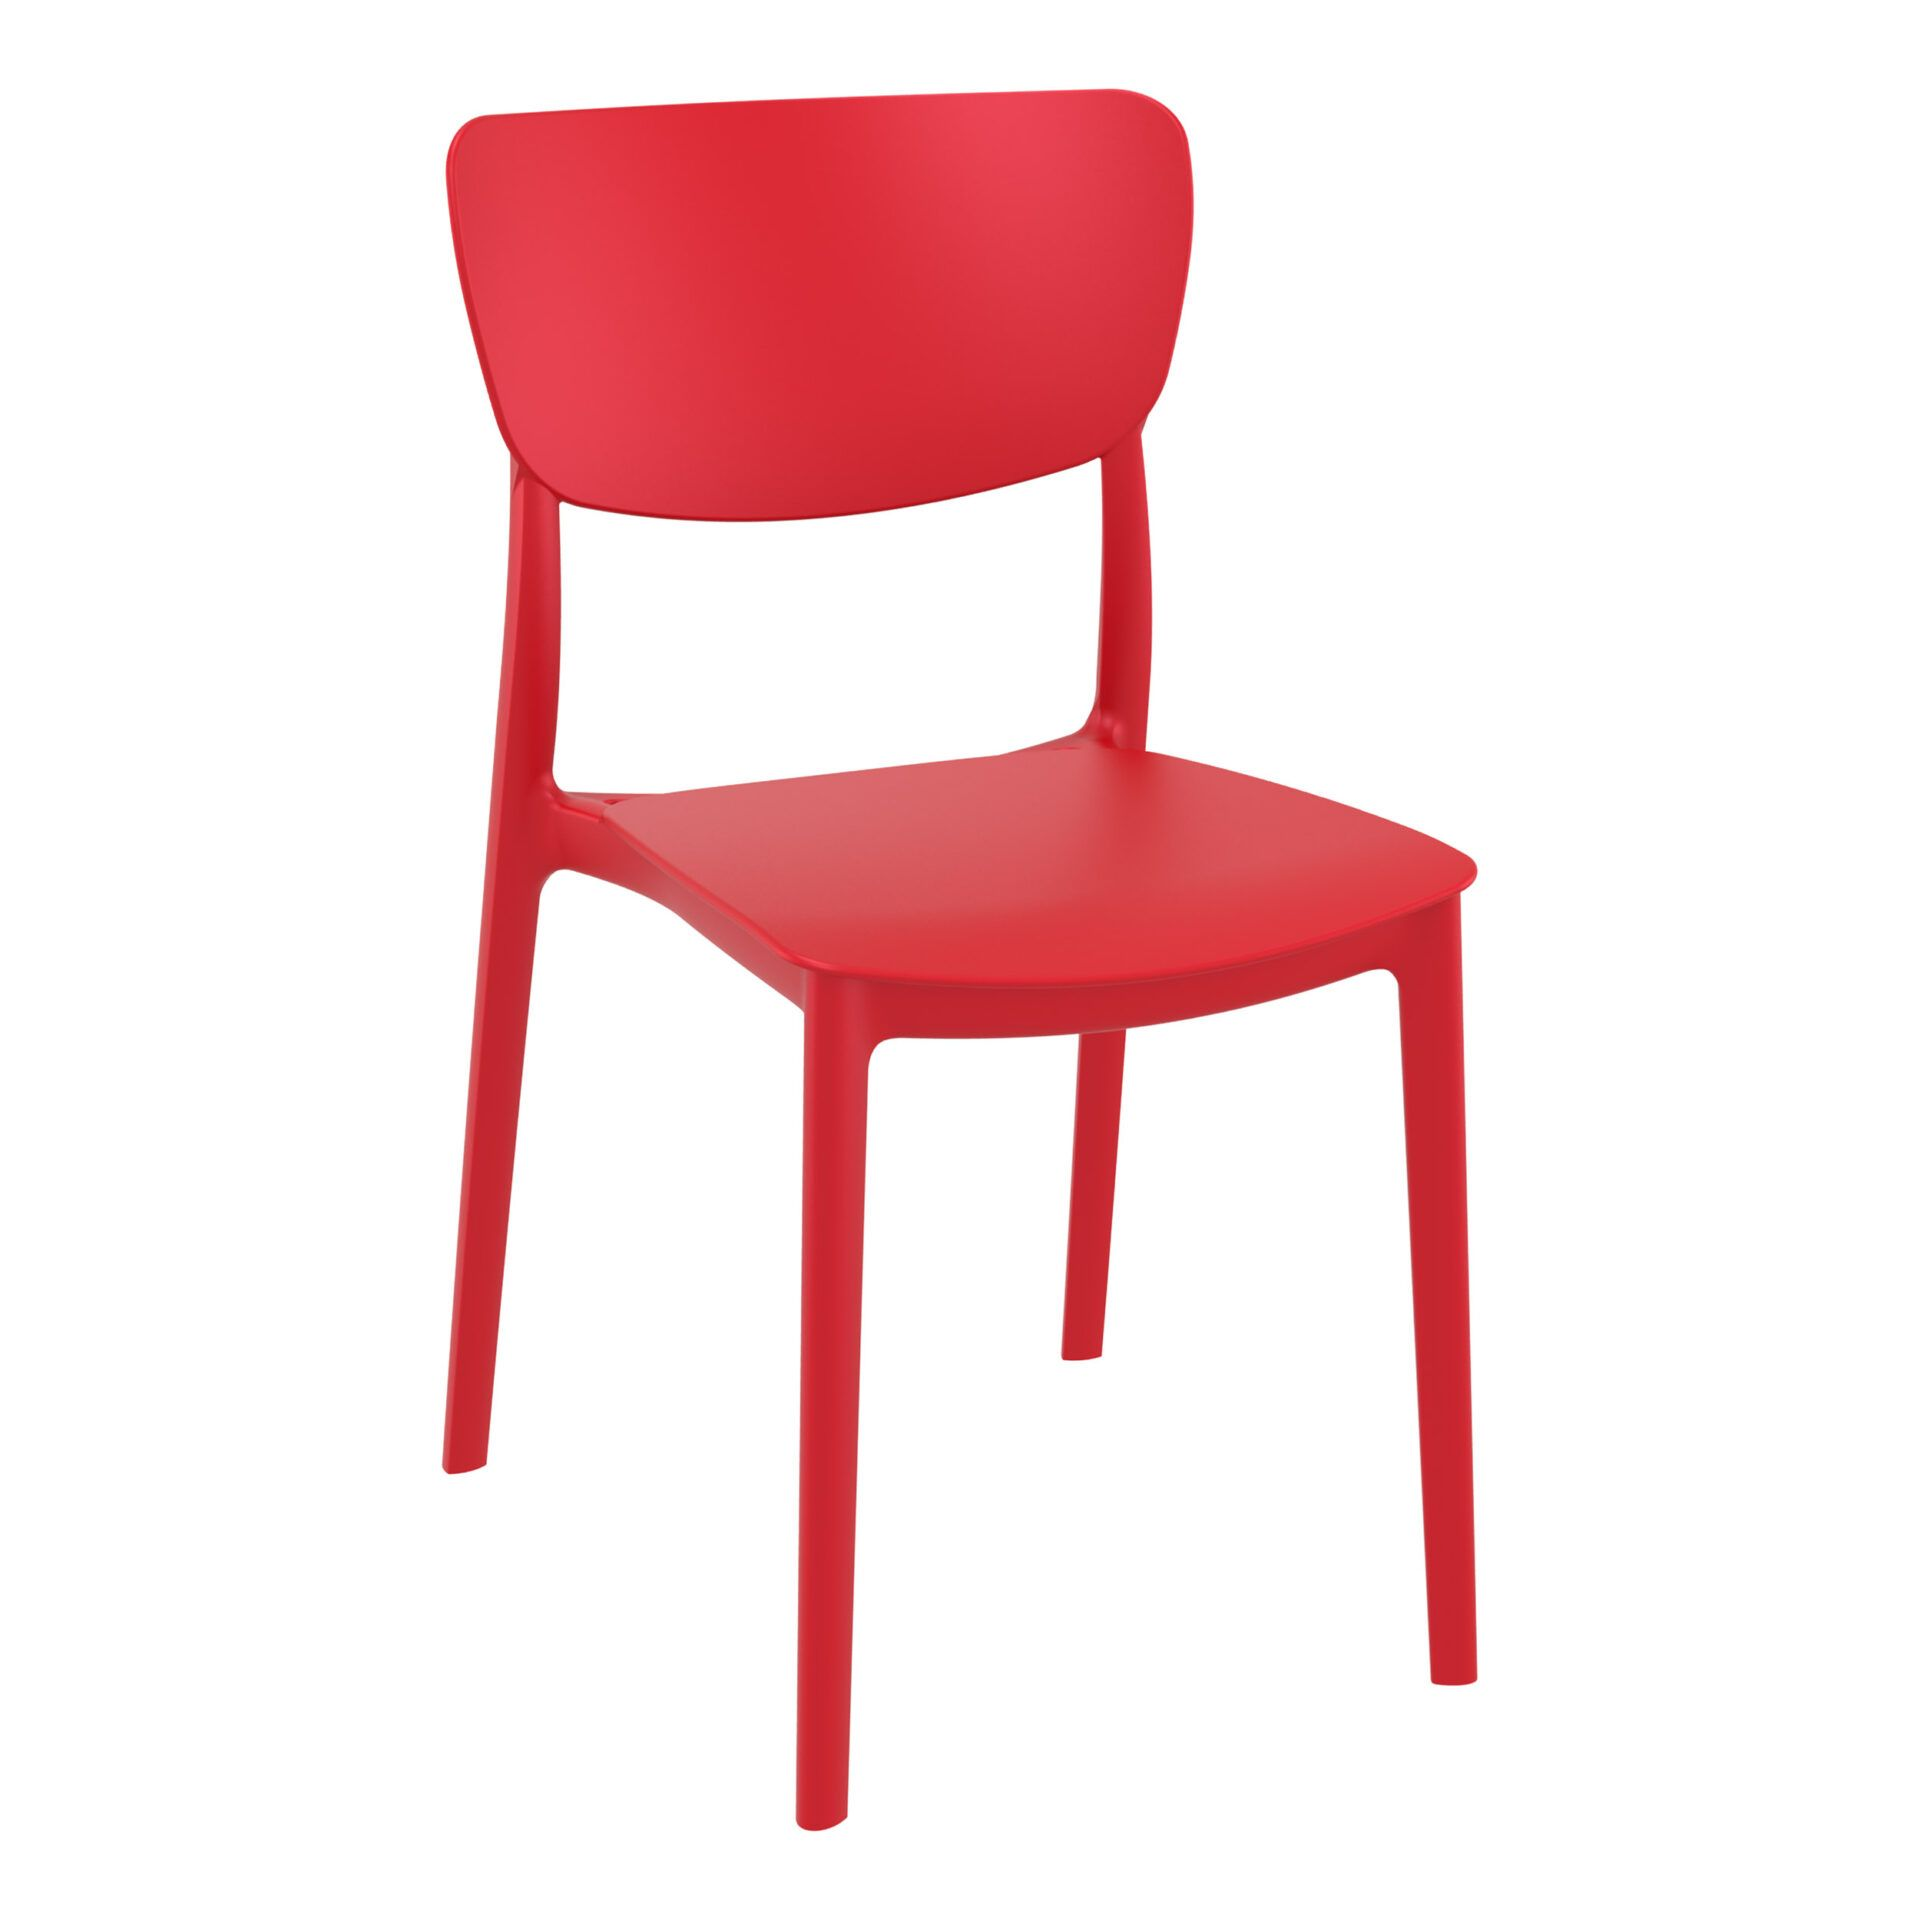 polypropylene outdoor dining monna chair red front side